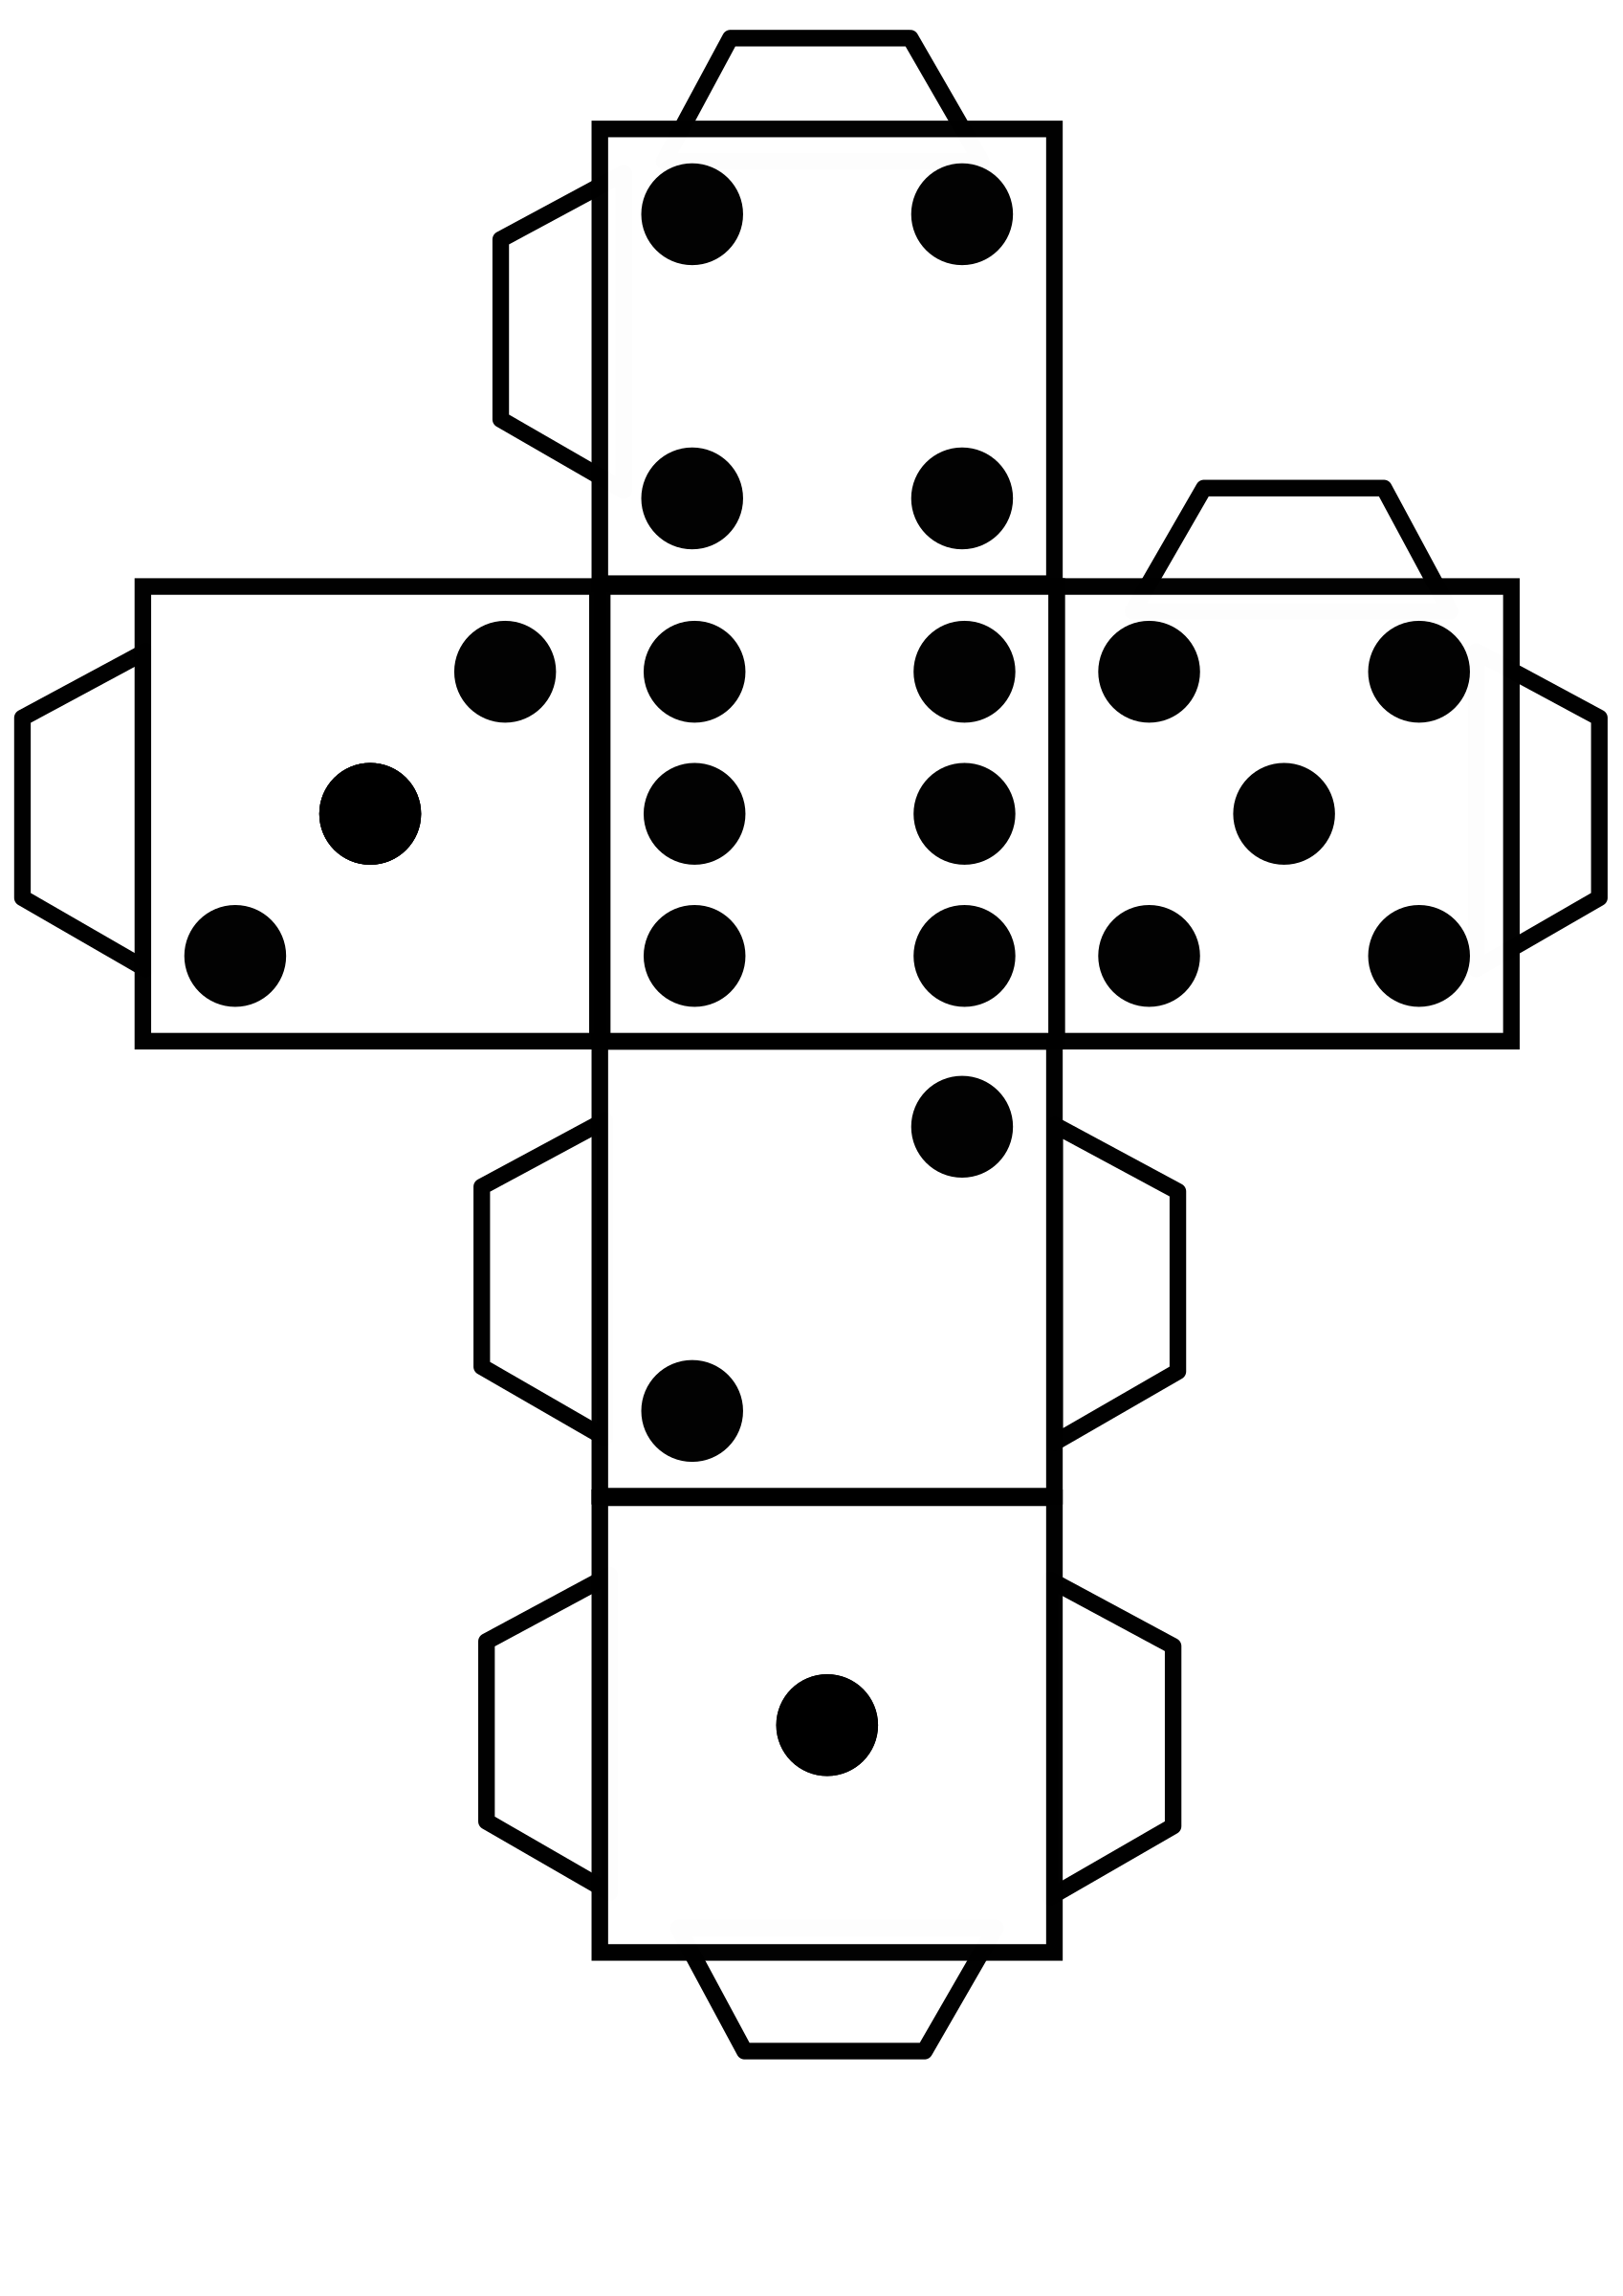 Printable die dice by. Domino clipart counting